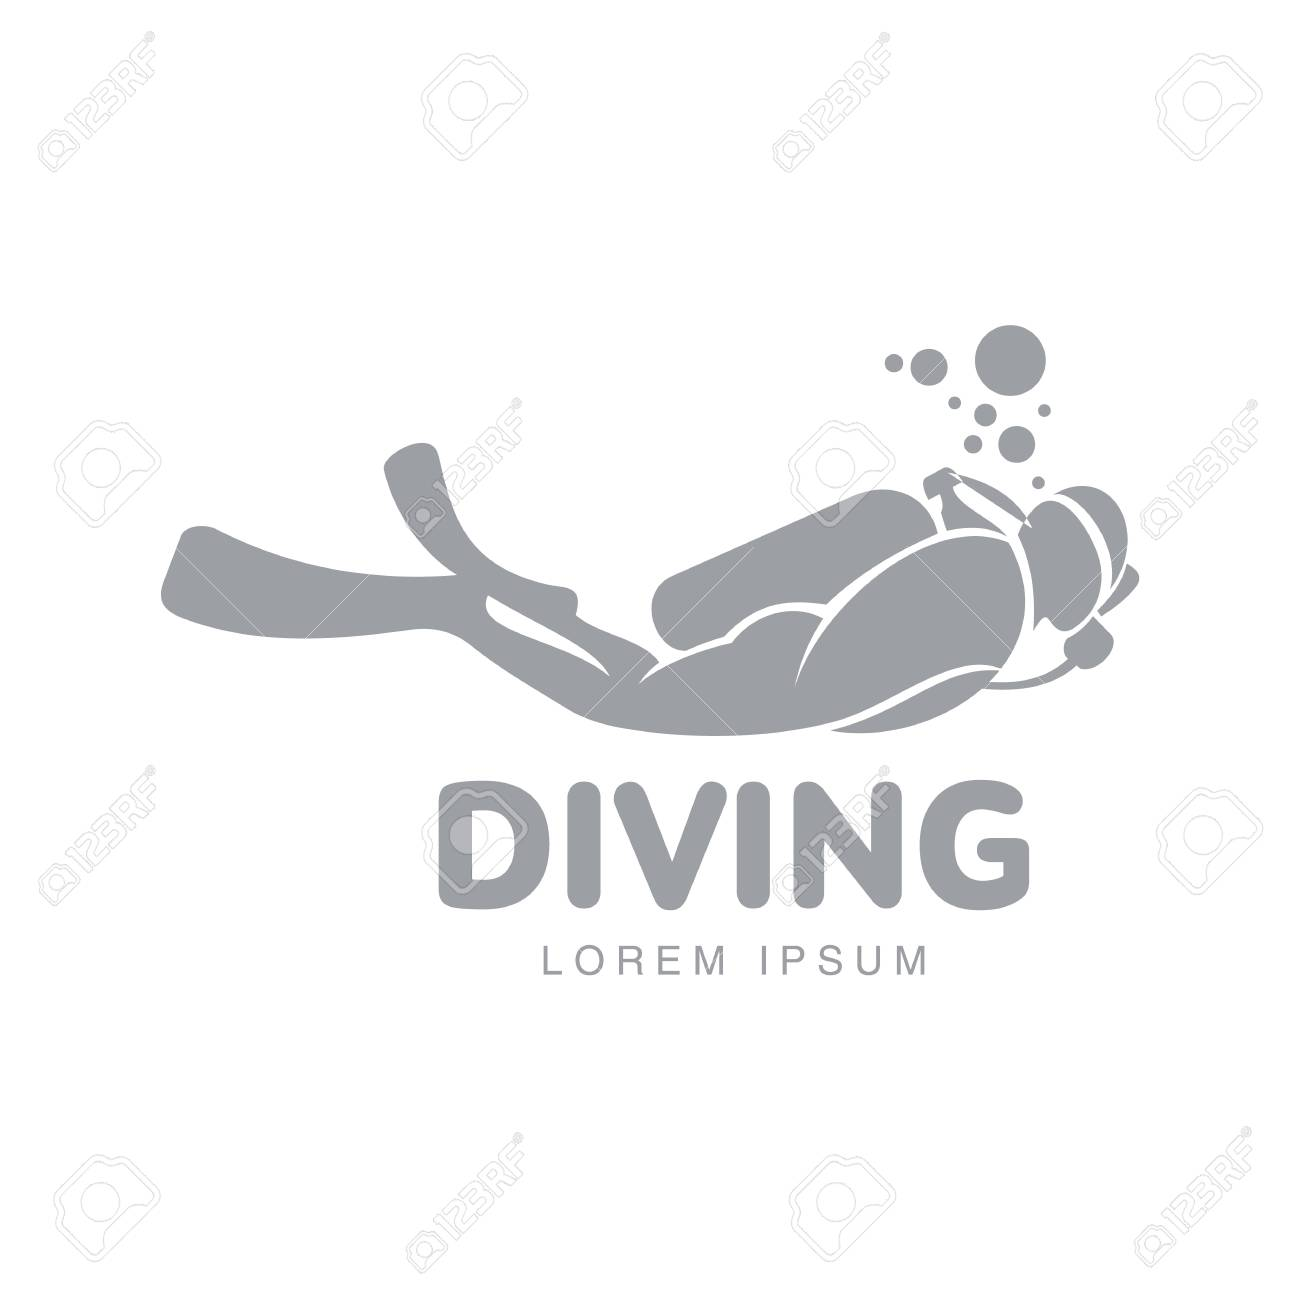 Black and white graphic diving logo template with diver swimming underwater, vector illustration isolated on white background. Scuba diving, snorkeling logotype, logo design with stylized diver - 70234767